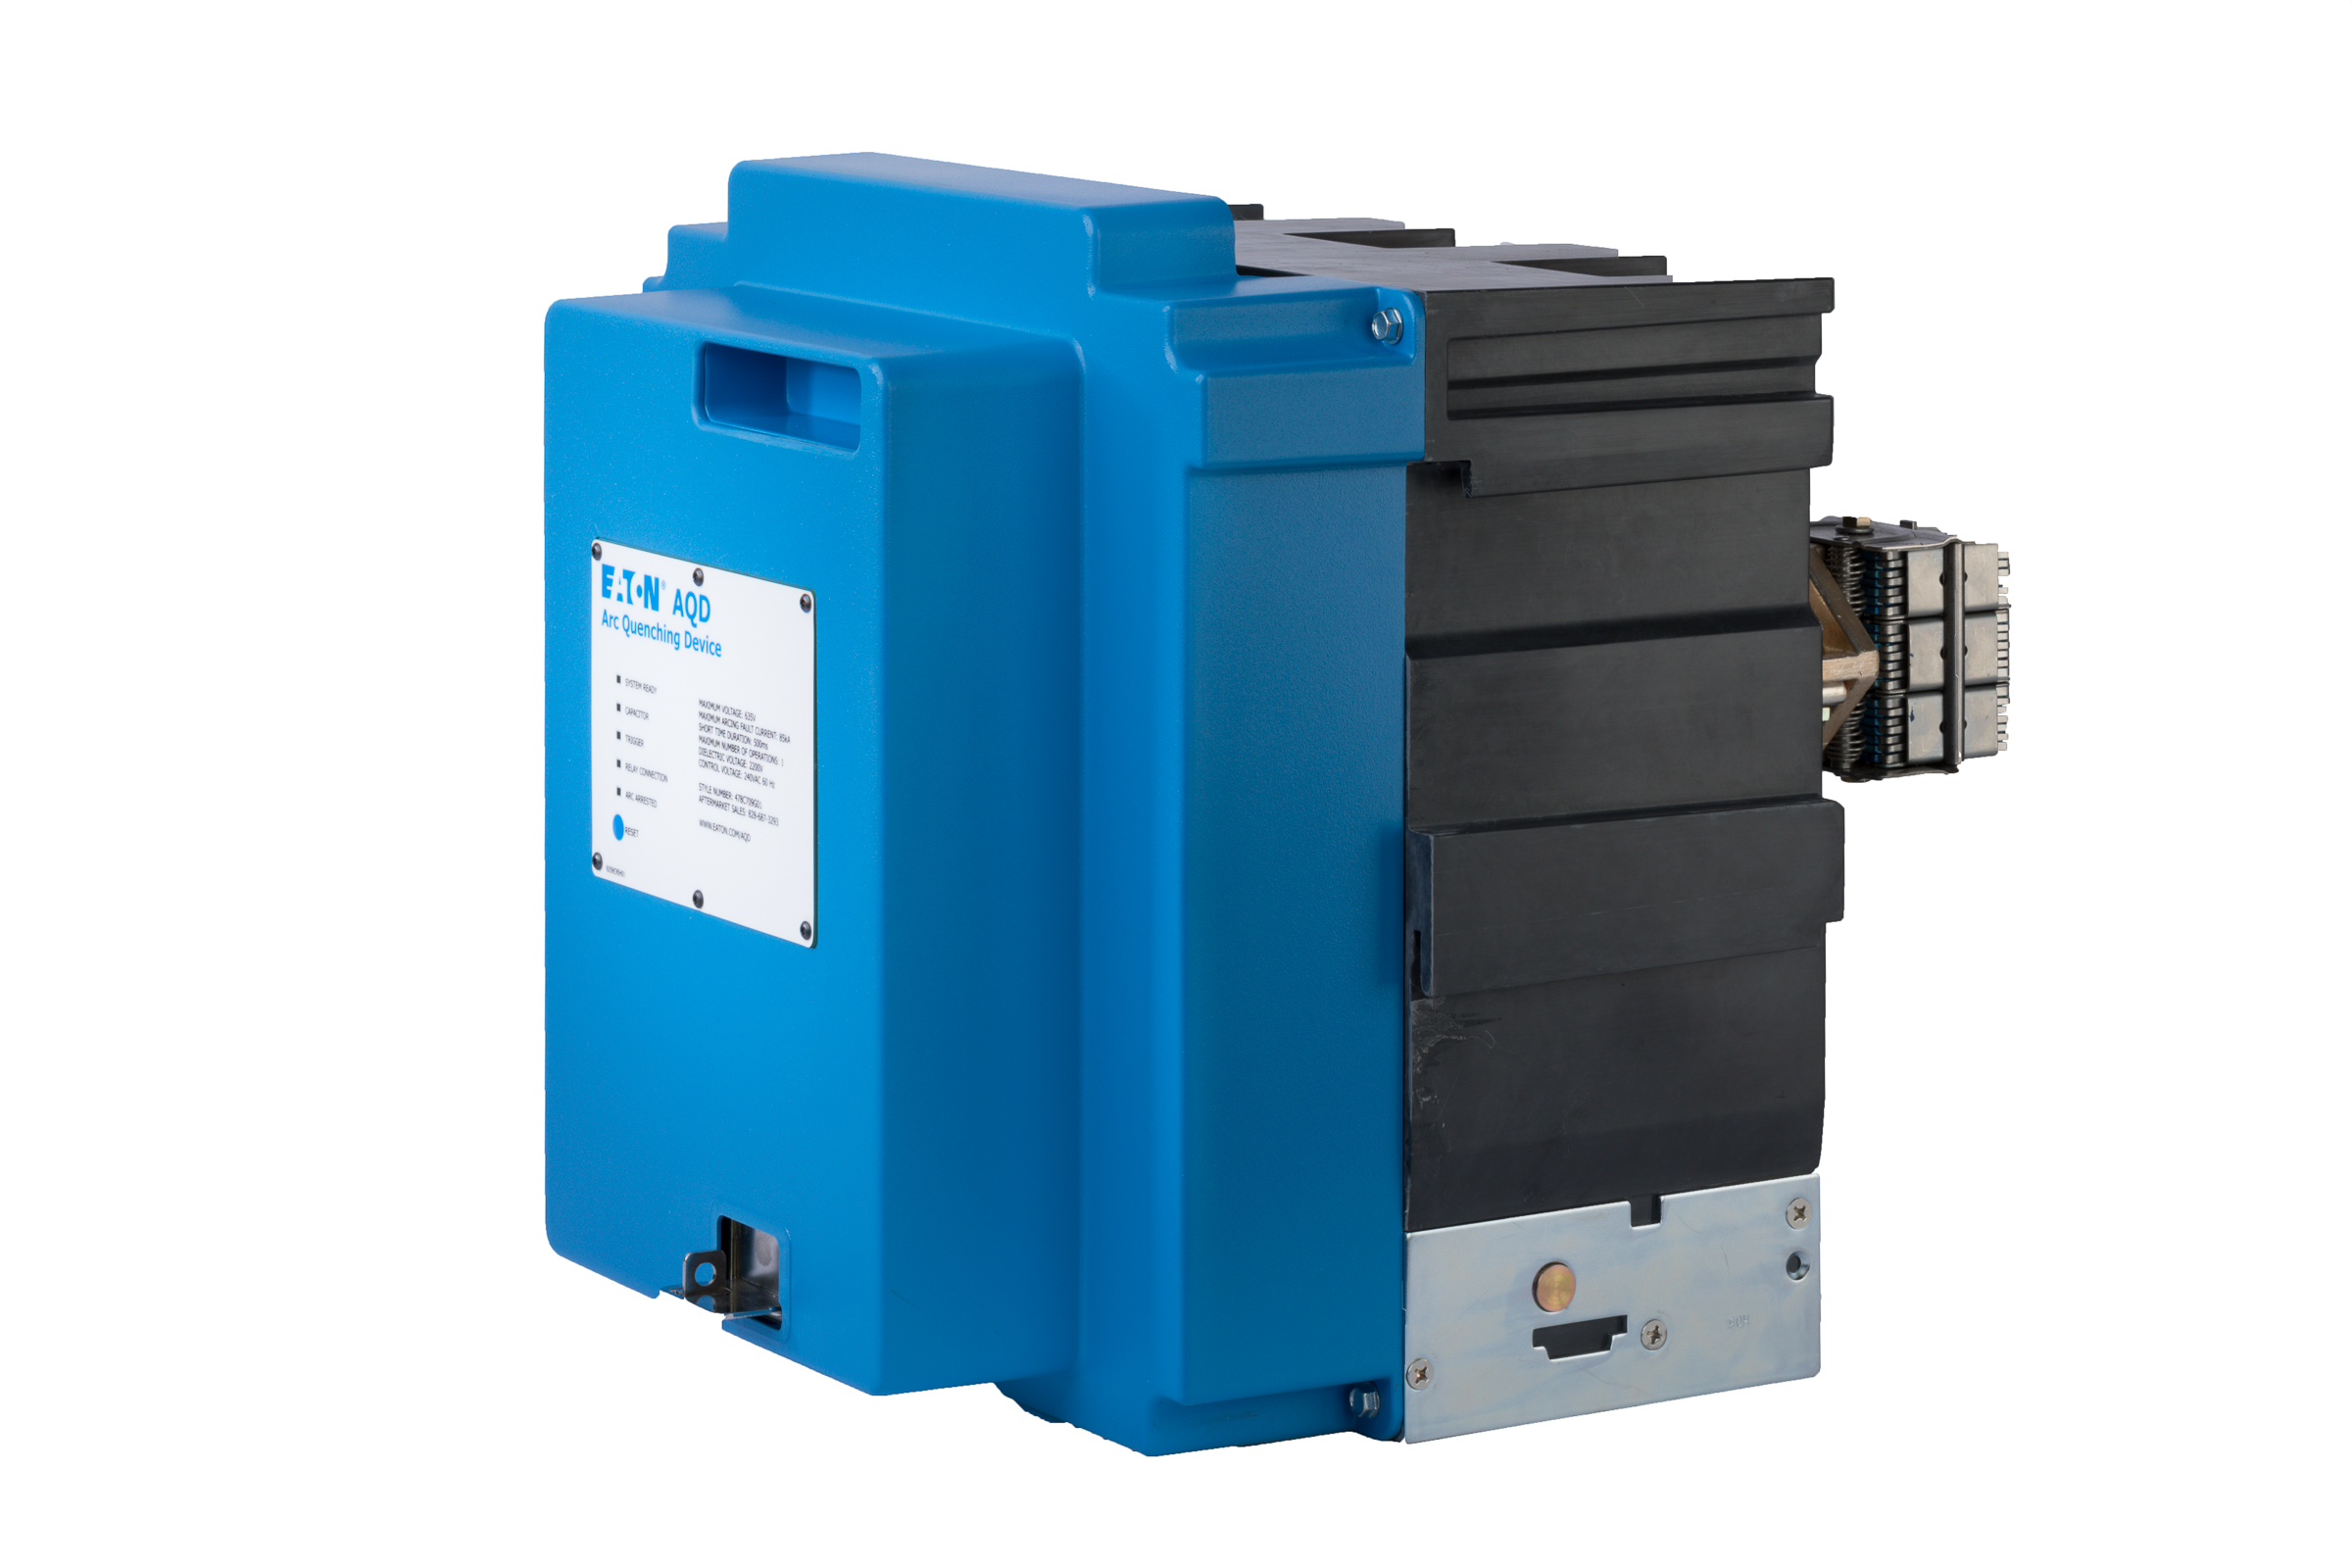 With Eaton's Arc Quenching Switchgear, electrical equipment can withstand an arc flash event with little to no damage, so that downtime is minimized.